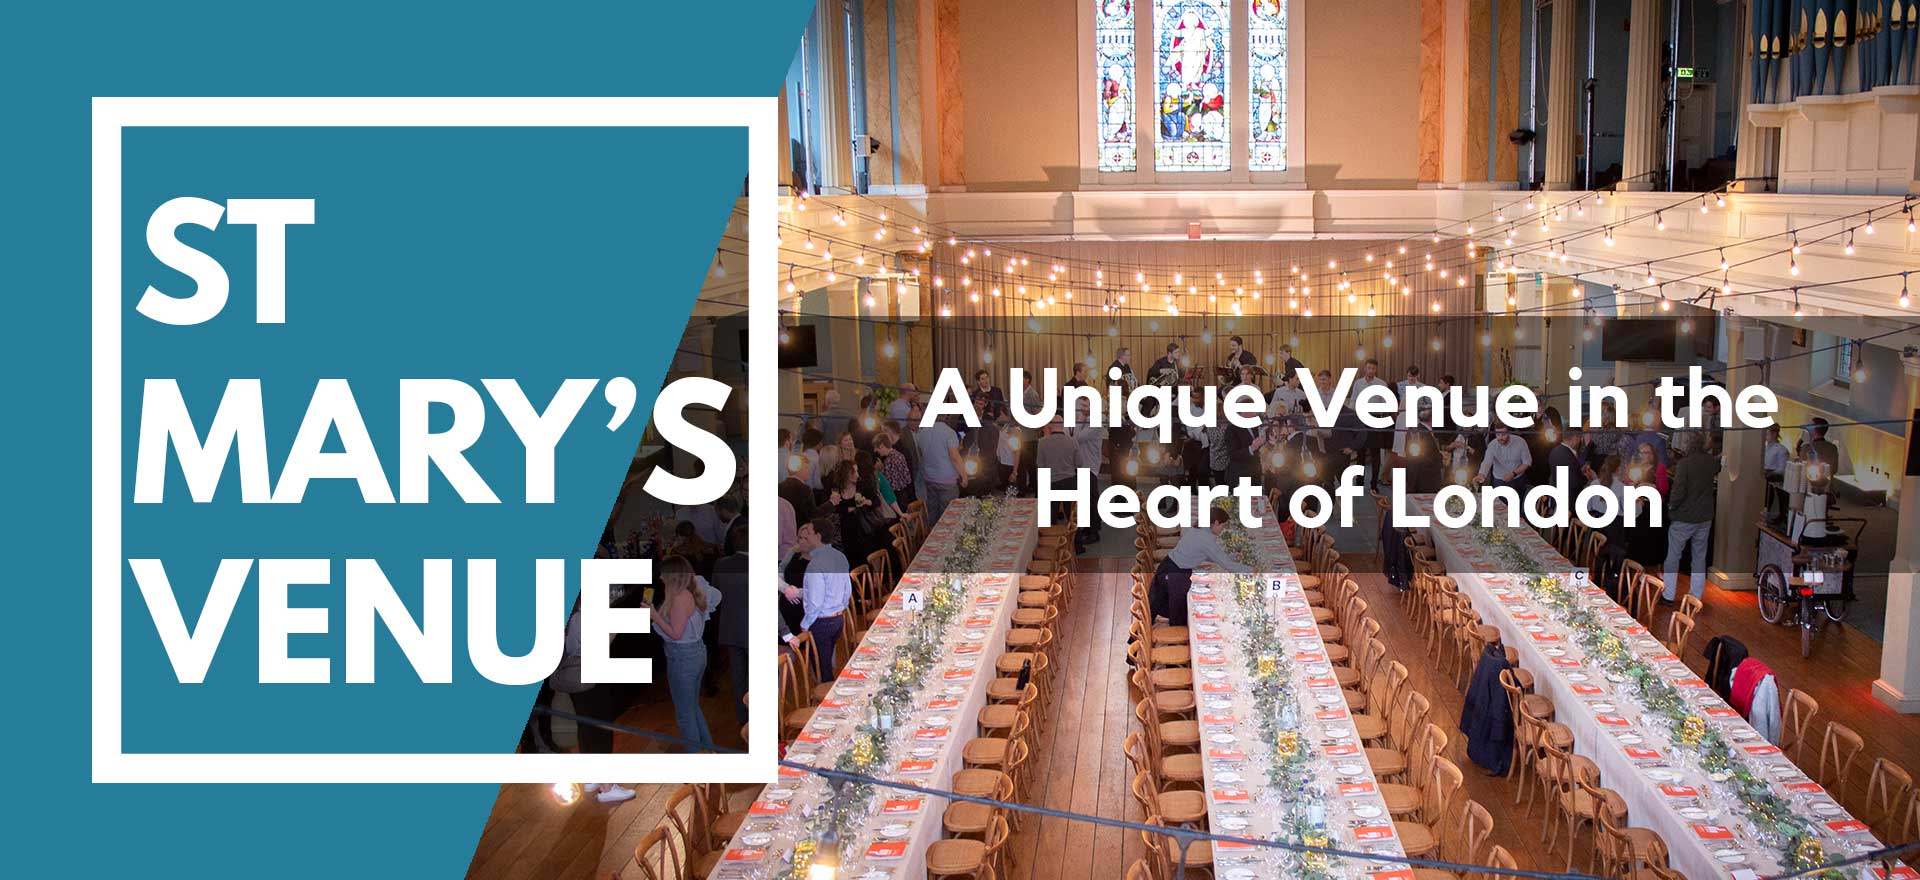 Header image of banquet style dining with festoons and guests at St Mary's Venue Hire, London